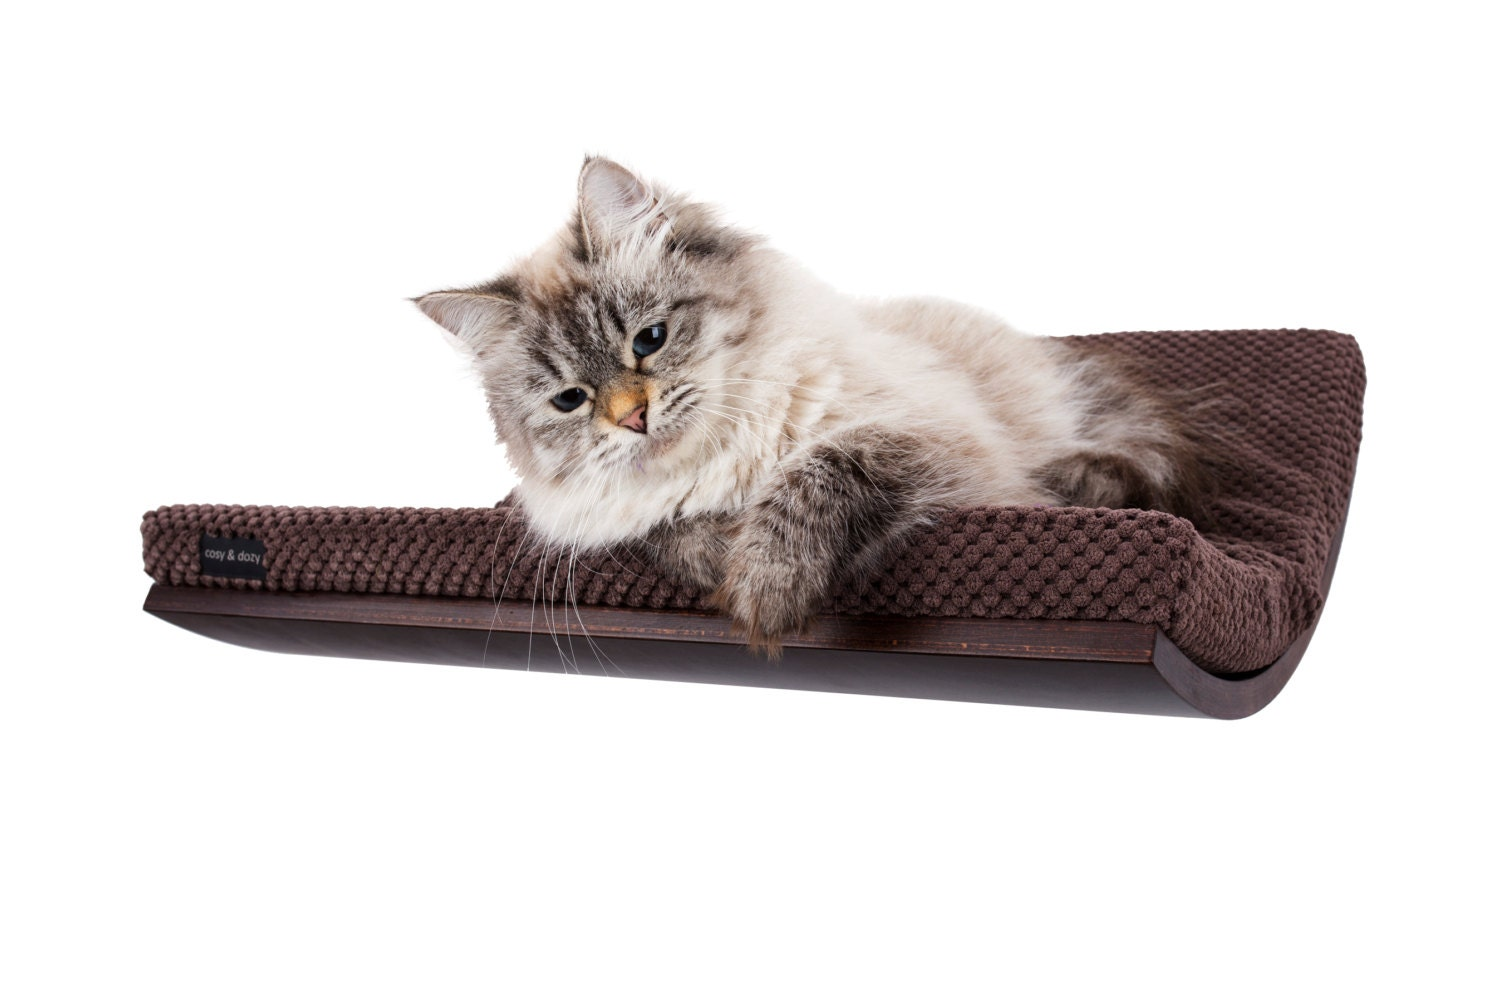 curve cat bed wall mounted cat bed cats beds best by cosyanddozy. Black Bedroom Furniture Sets. Home Design Ideas